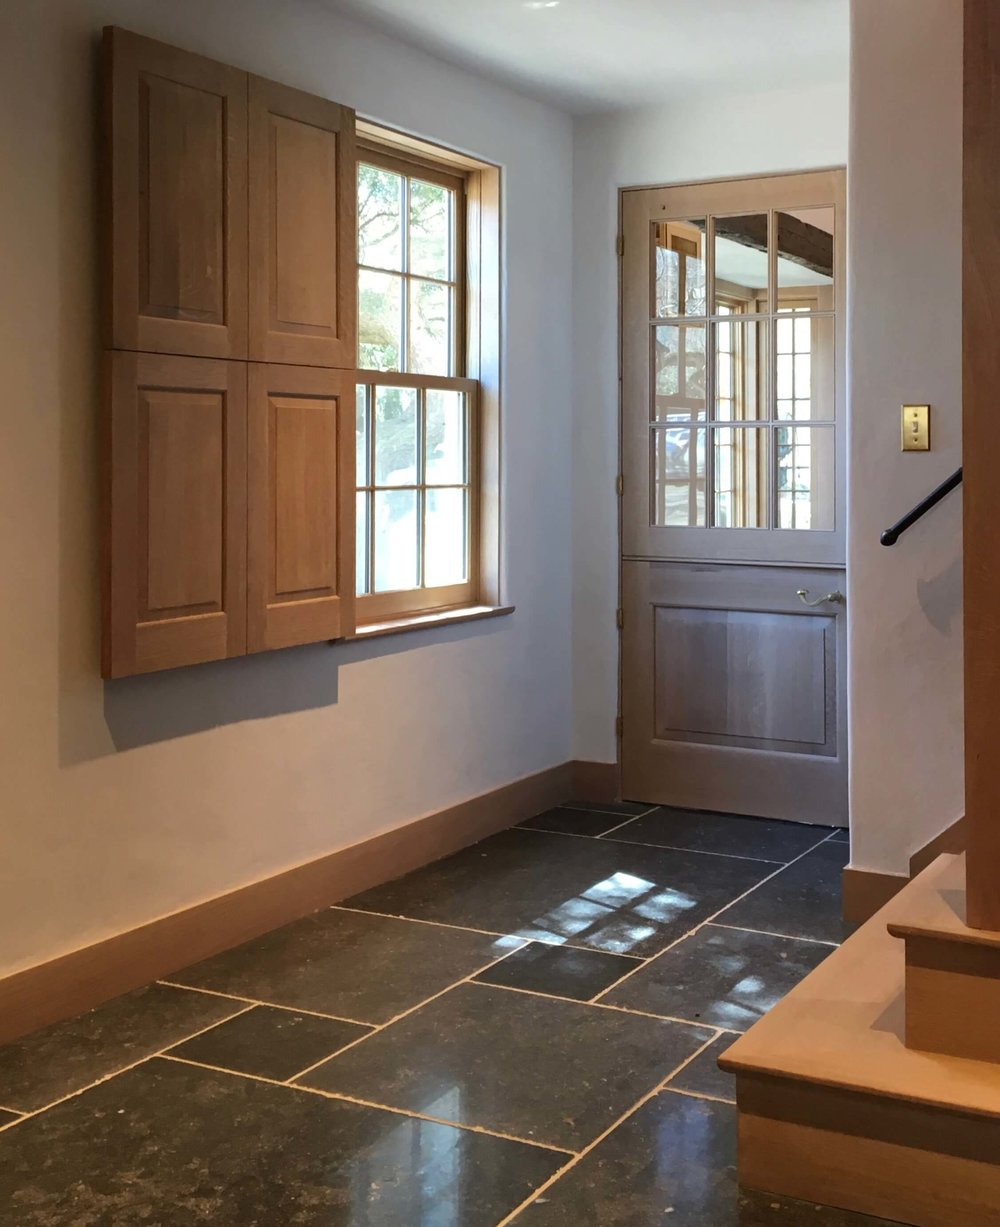 10 OYSTER BAY HOUSE INT PHOTO REAR ENTRY FLOOR WEBSITE 2018.jpg